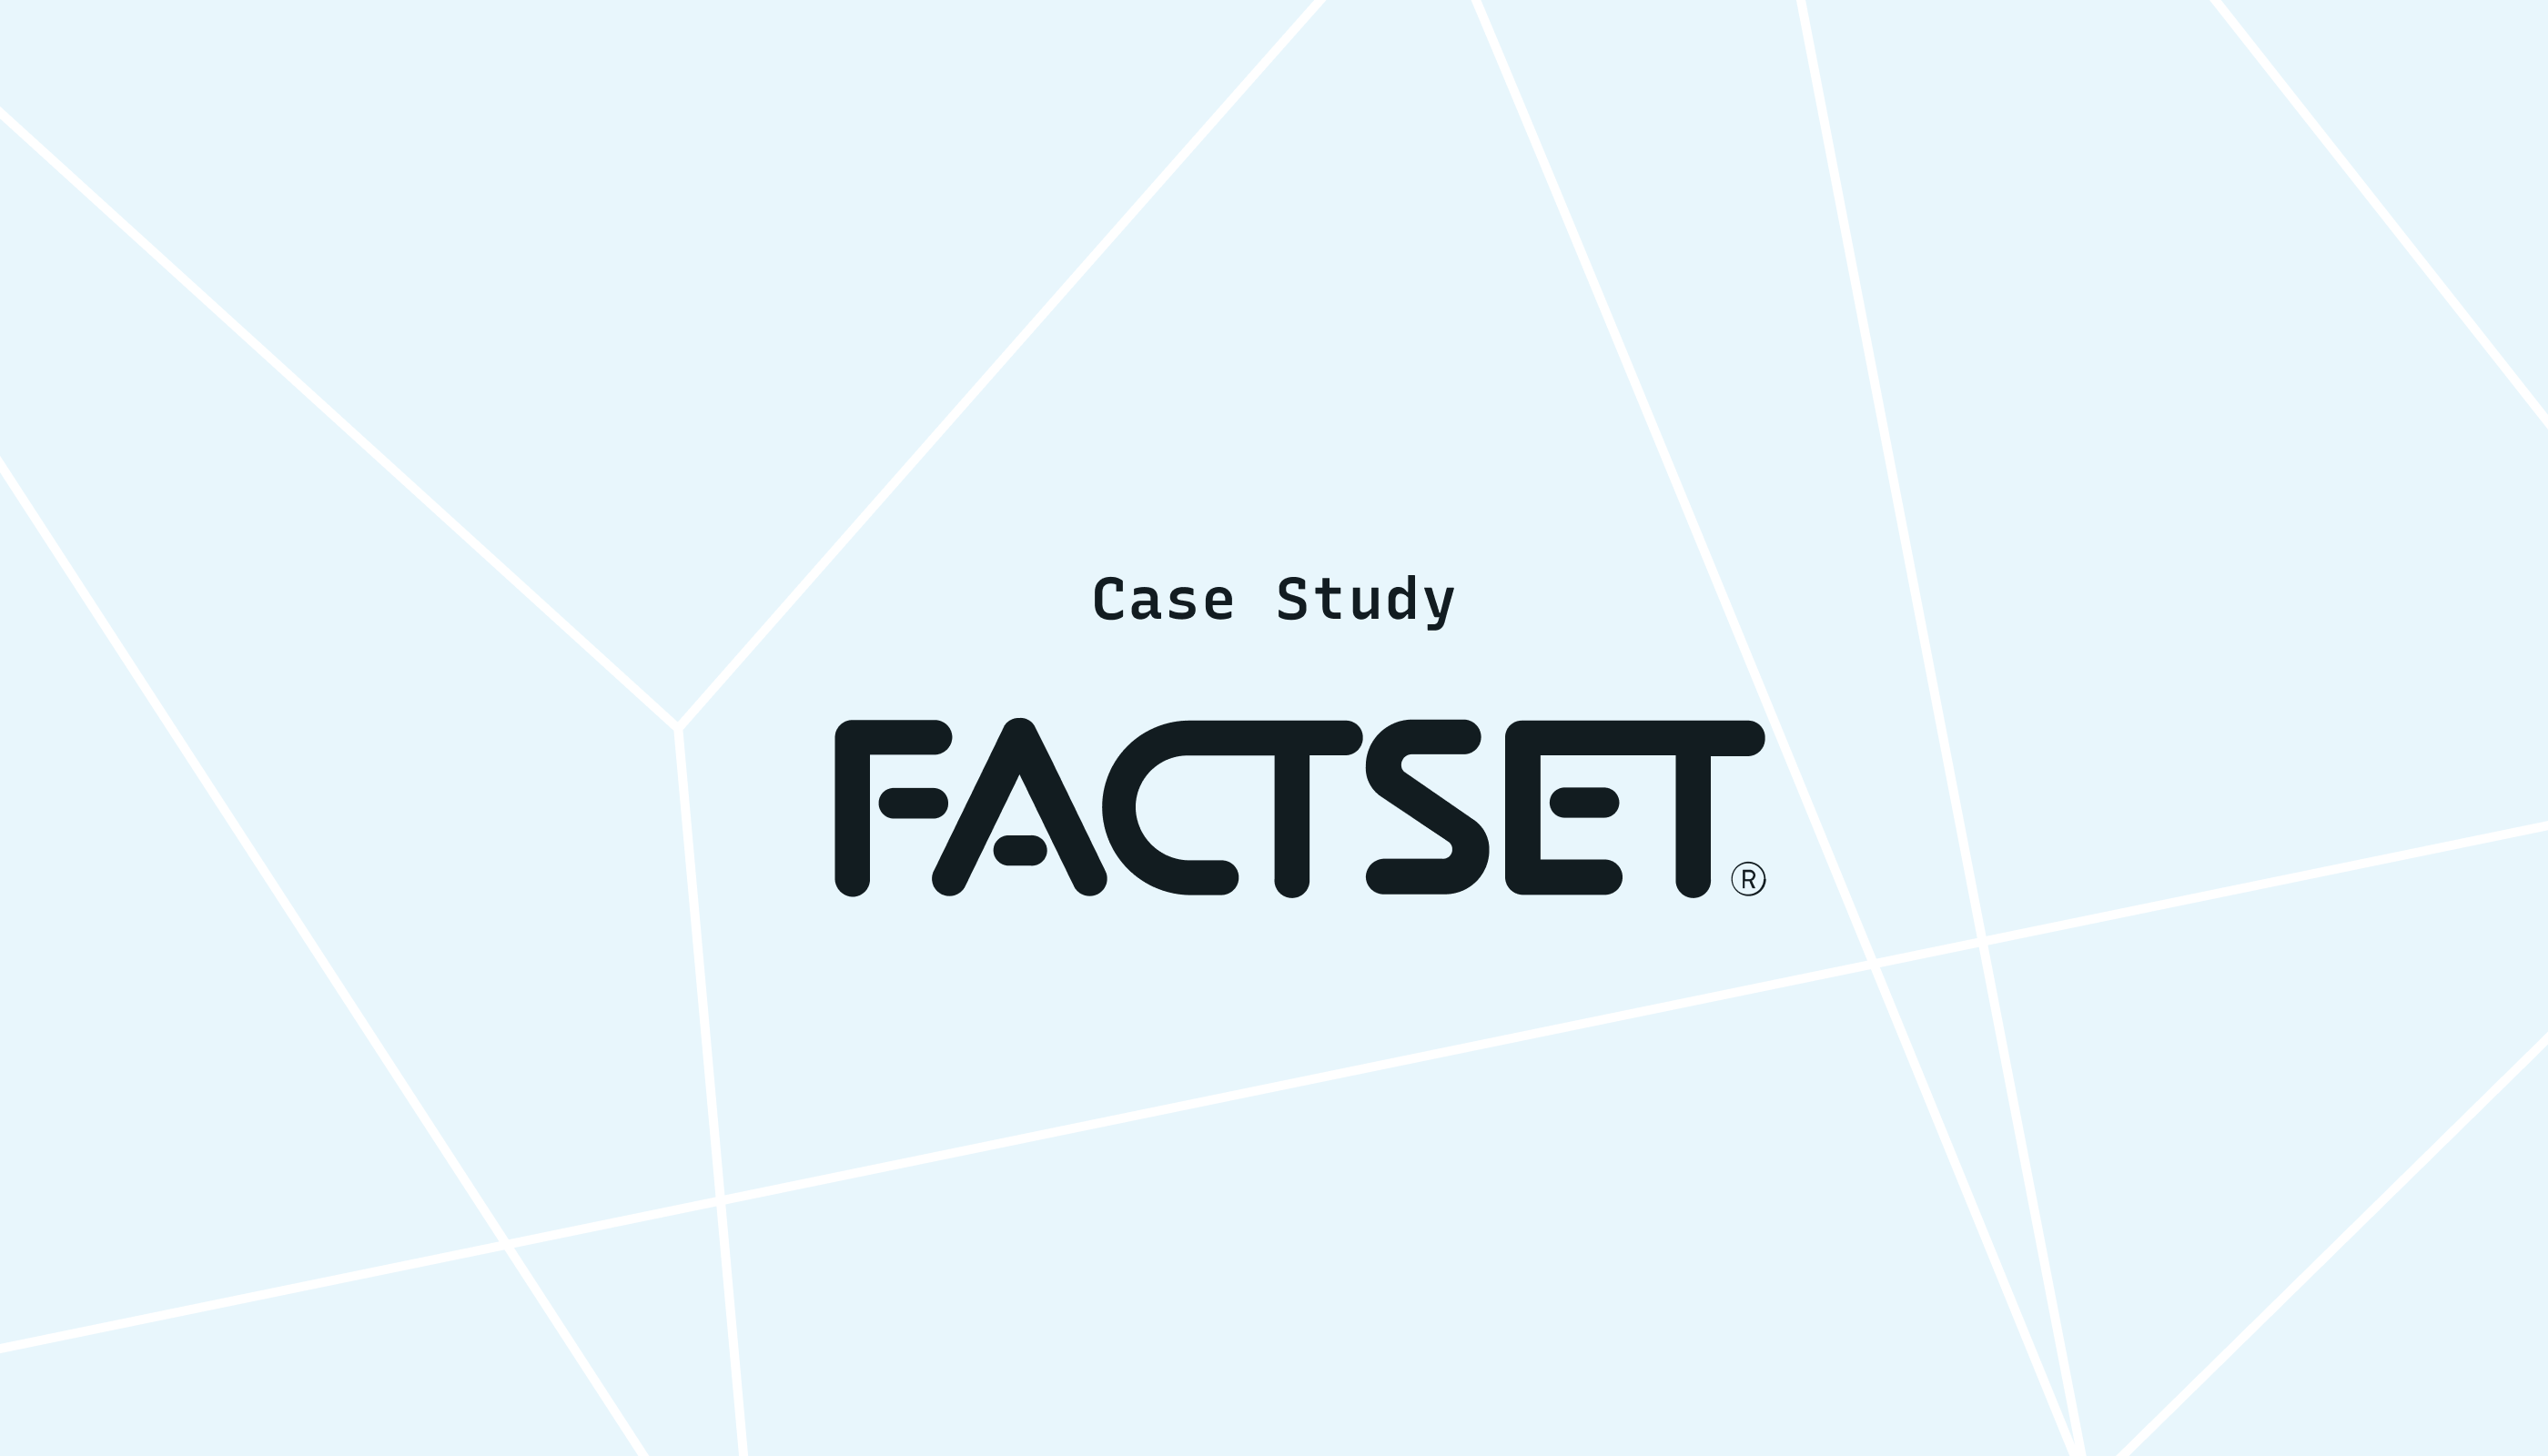 FactSet Increases Developer Efficiency, Improves Workflows, and Reduces MTTR with Lightstep